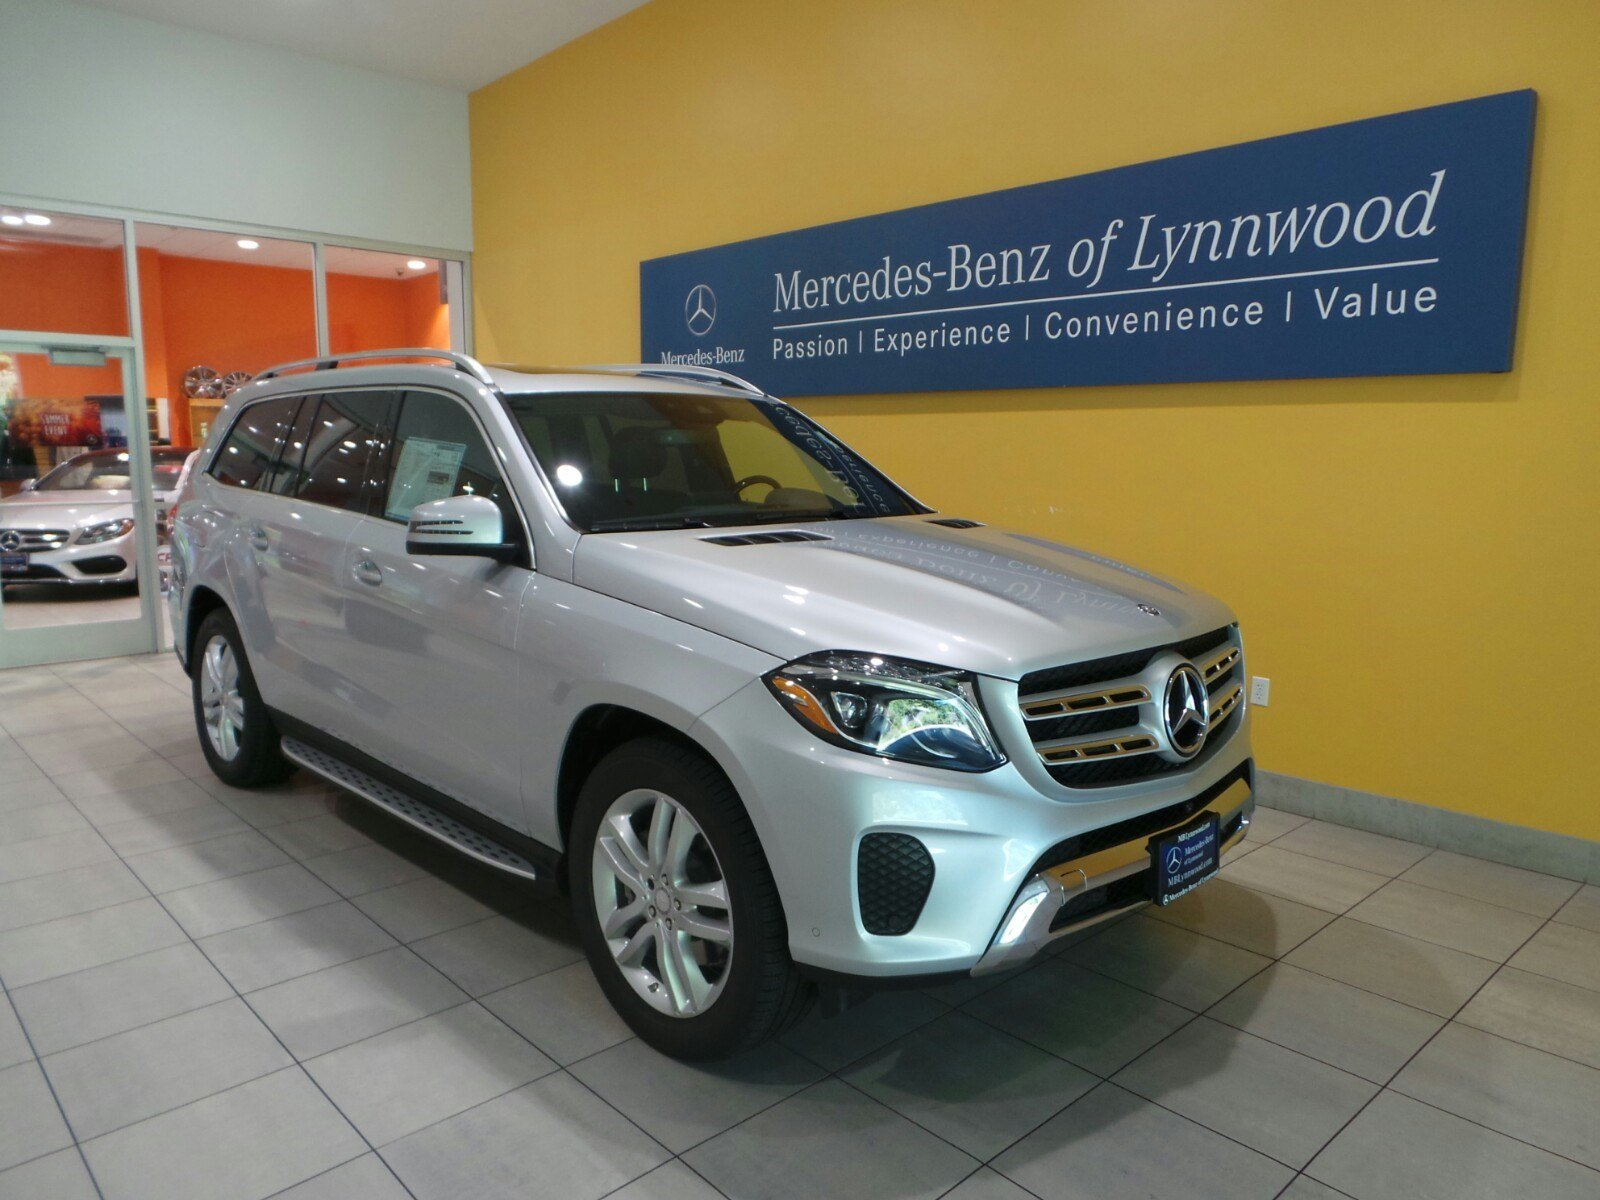 New 2017 mercedes benz gls gls450 4matic suv in lynnwood for 2017 mercedes benz gls450